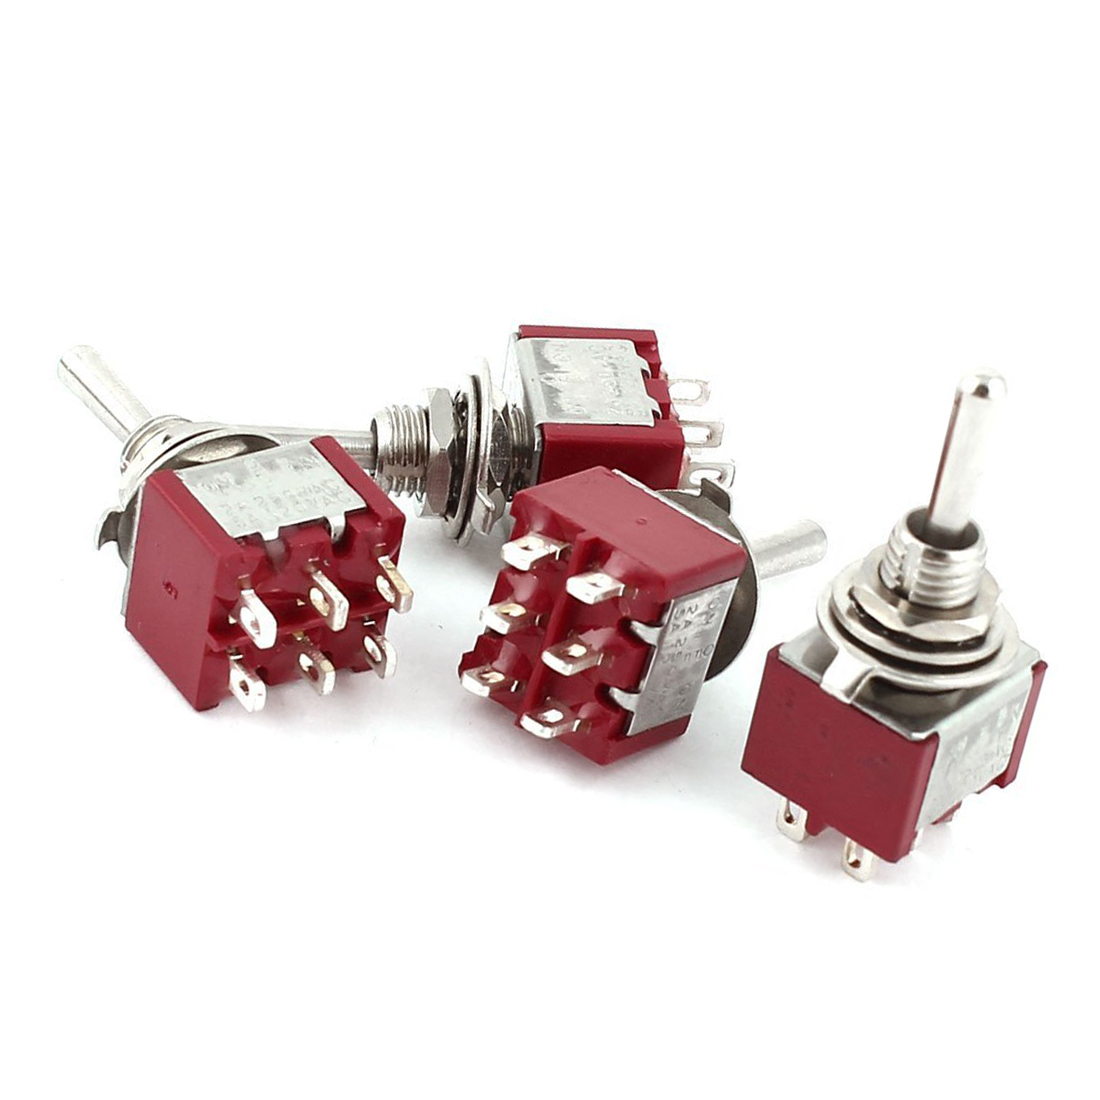 High Quality 4Pcs AC 250V 2A 120V 5A 6 Pin Terminals ON/Off/ON DPDT Toggle Switches 5 x on off small toggle switch miniature spst 6mm ac250v 3a 120v 5a